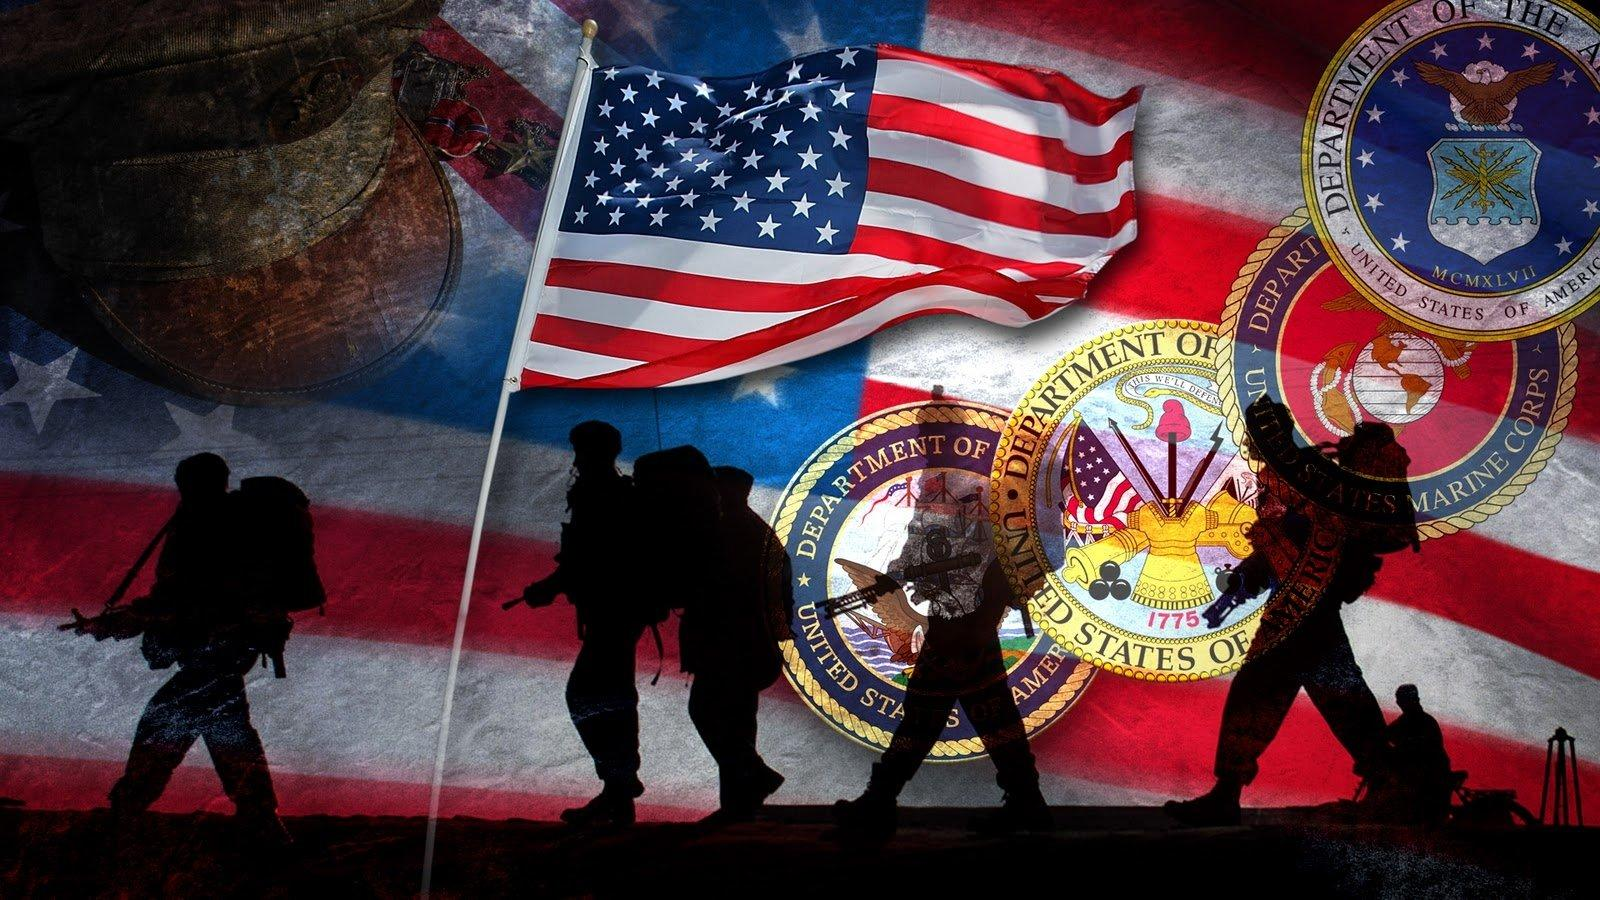 55+ Veterans Day Wallpaper Screensavers for iPhone